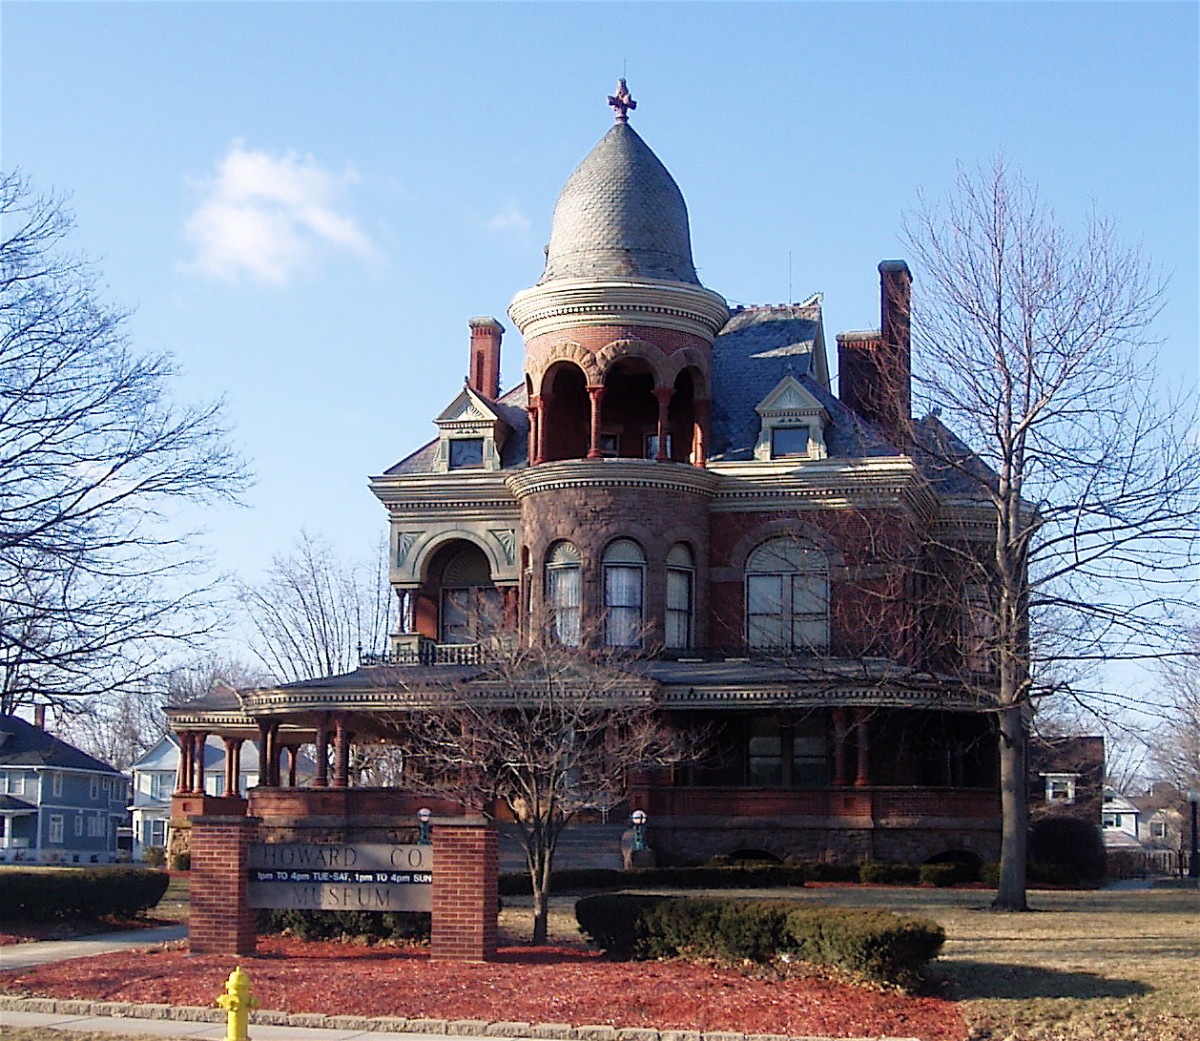 The Sieberling Mansion was built in 1890 at a cost of $50,000